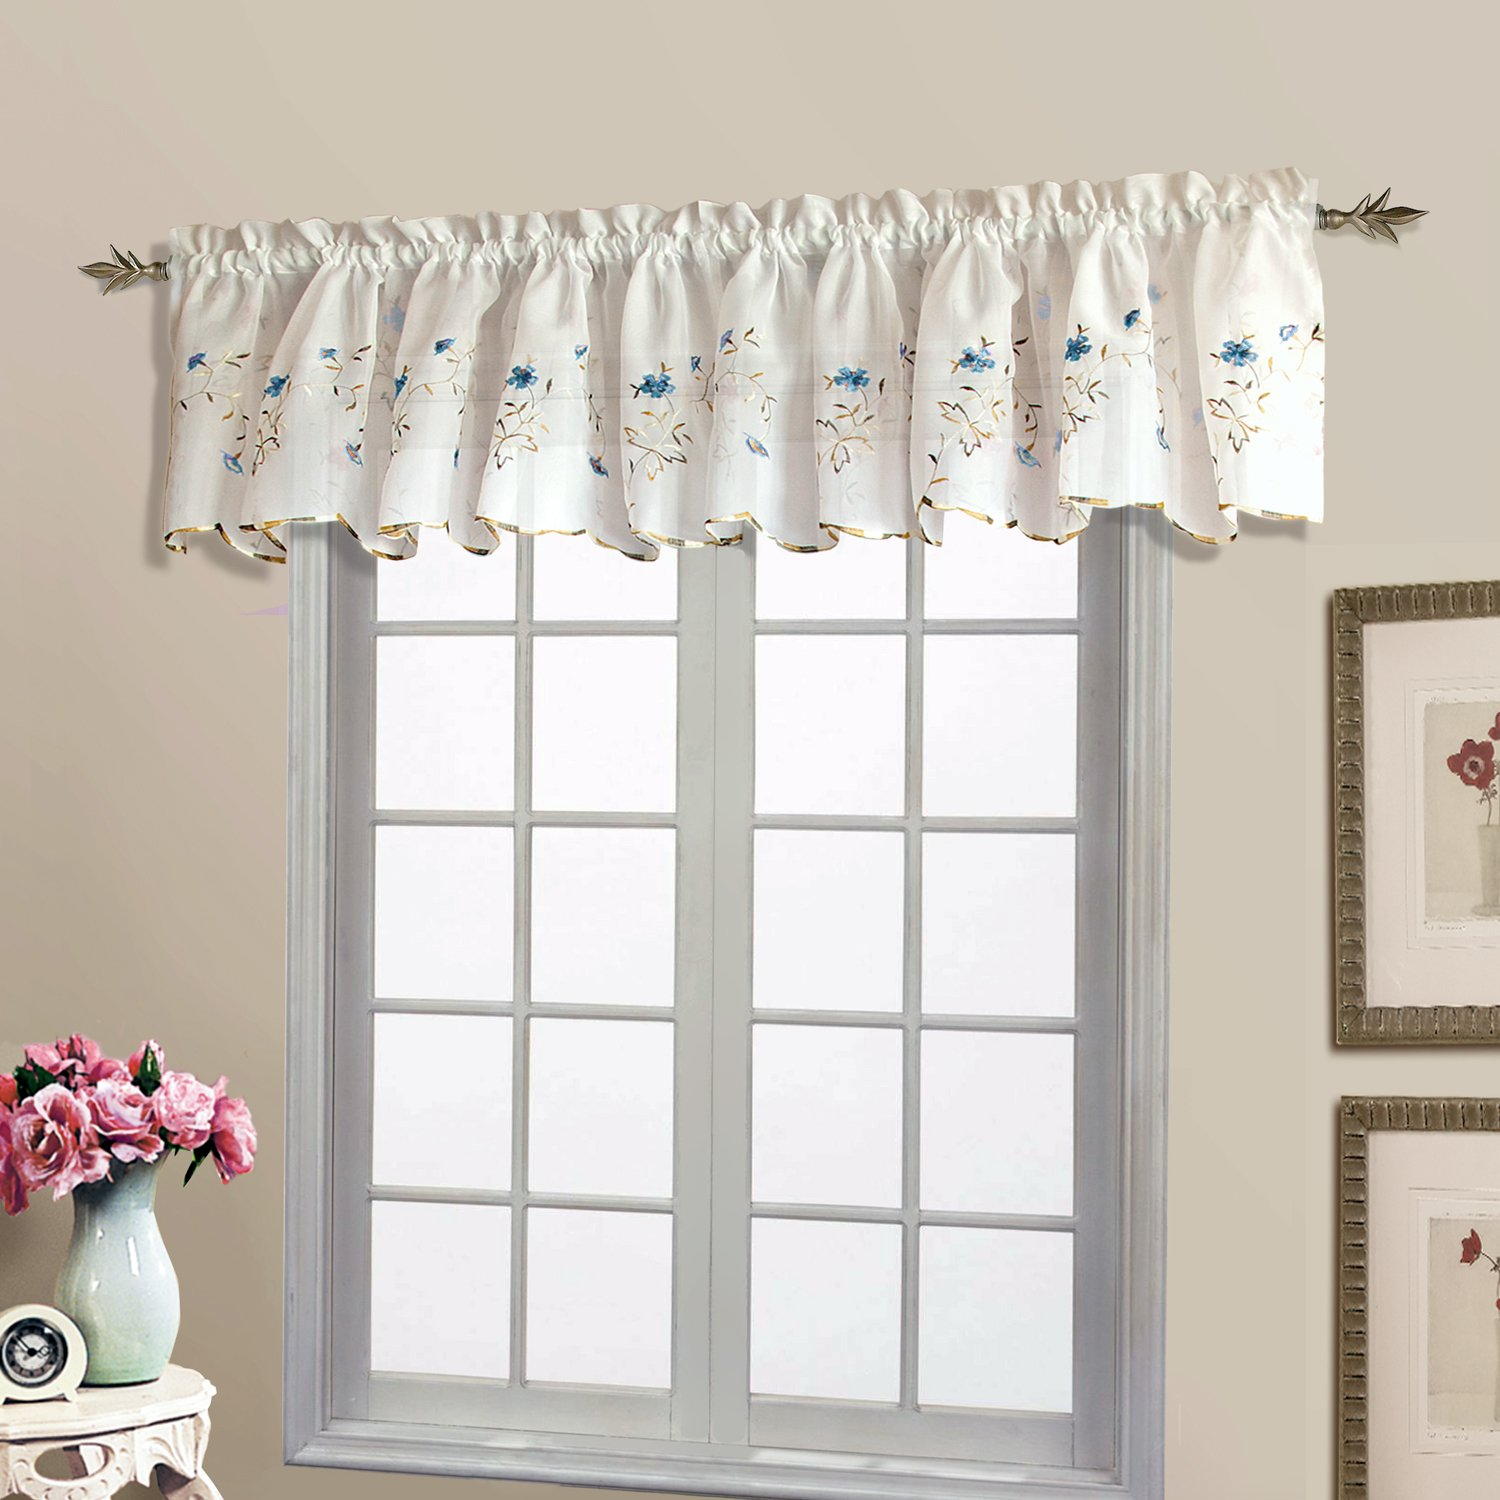 royal abri gray amazon curtain home sheer kitchen com hotel inches by silver crushed panel valance dp grommet